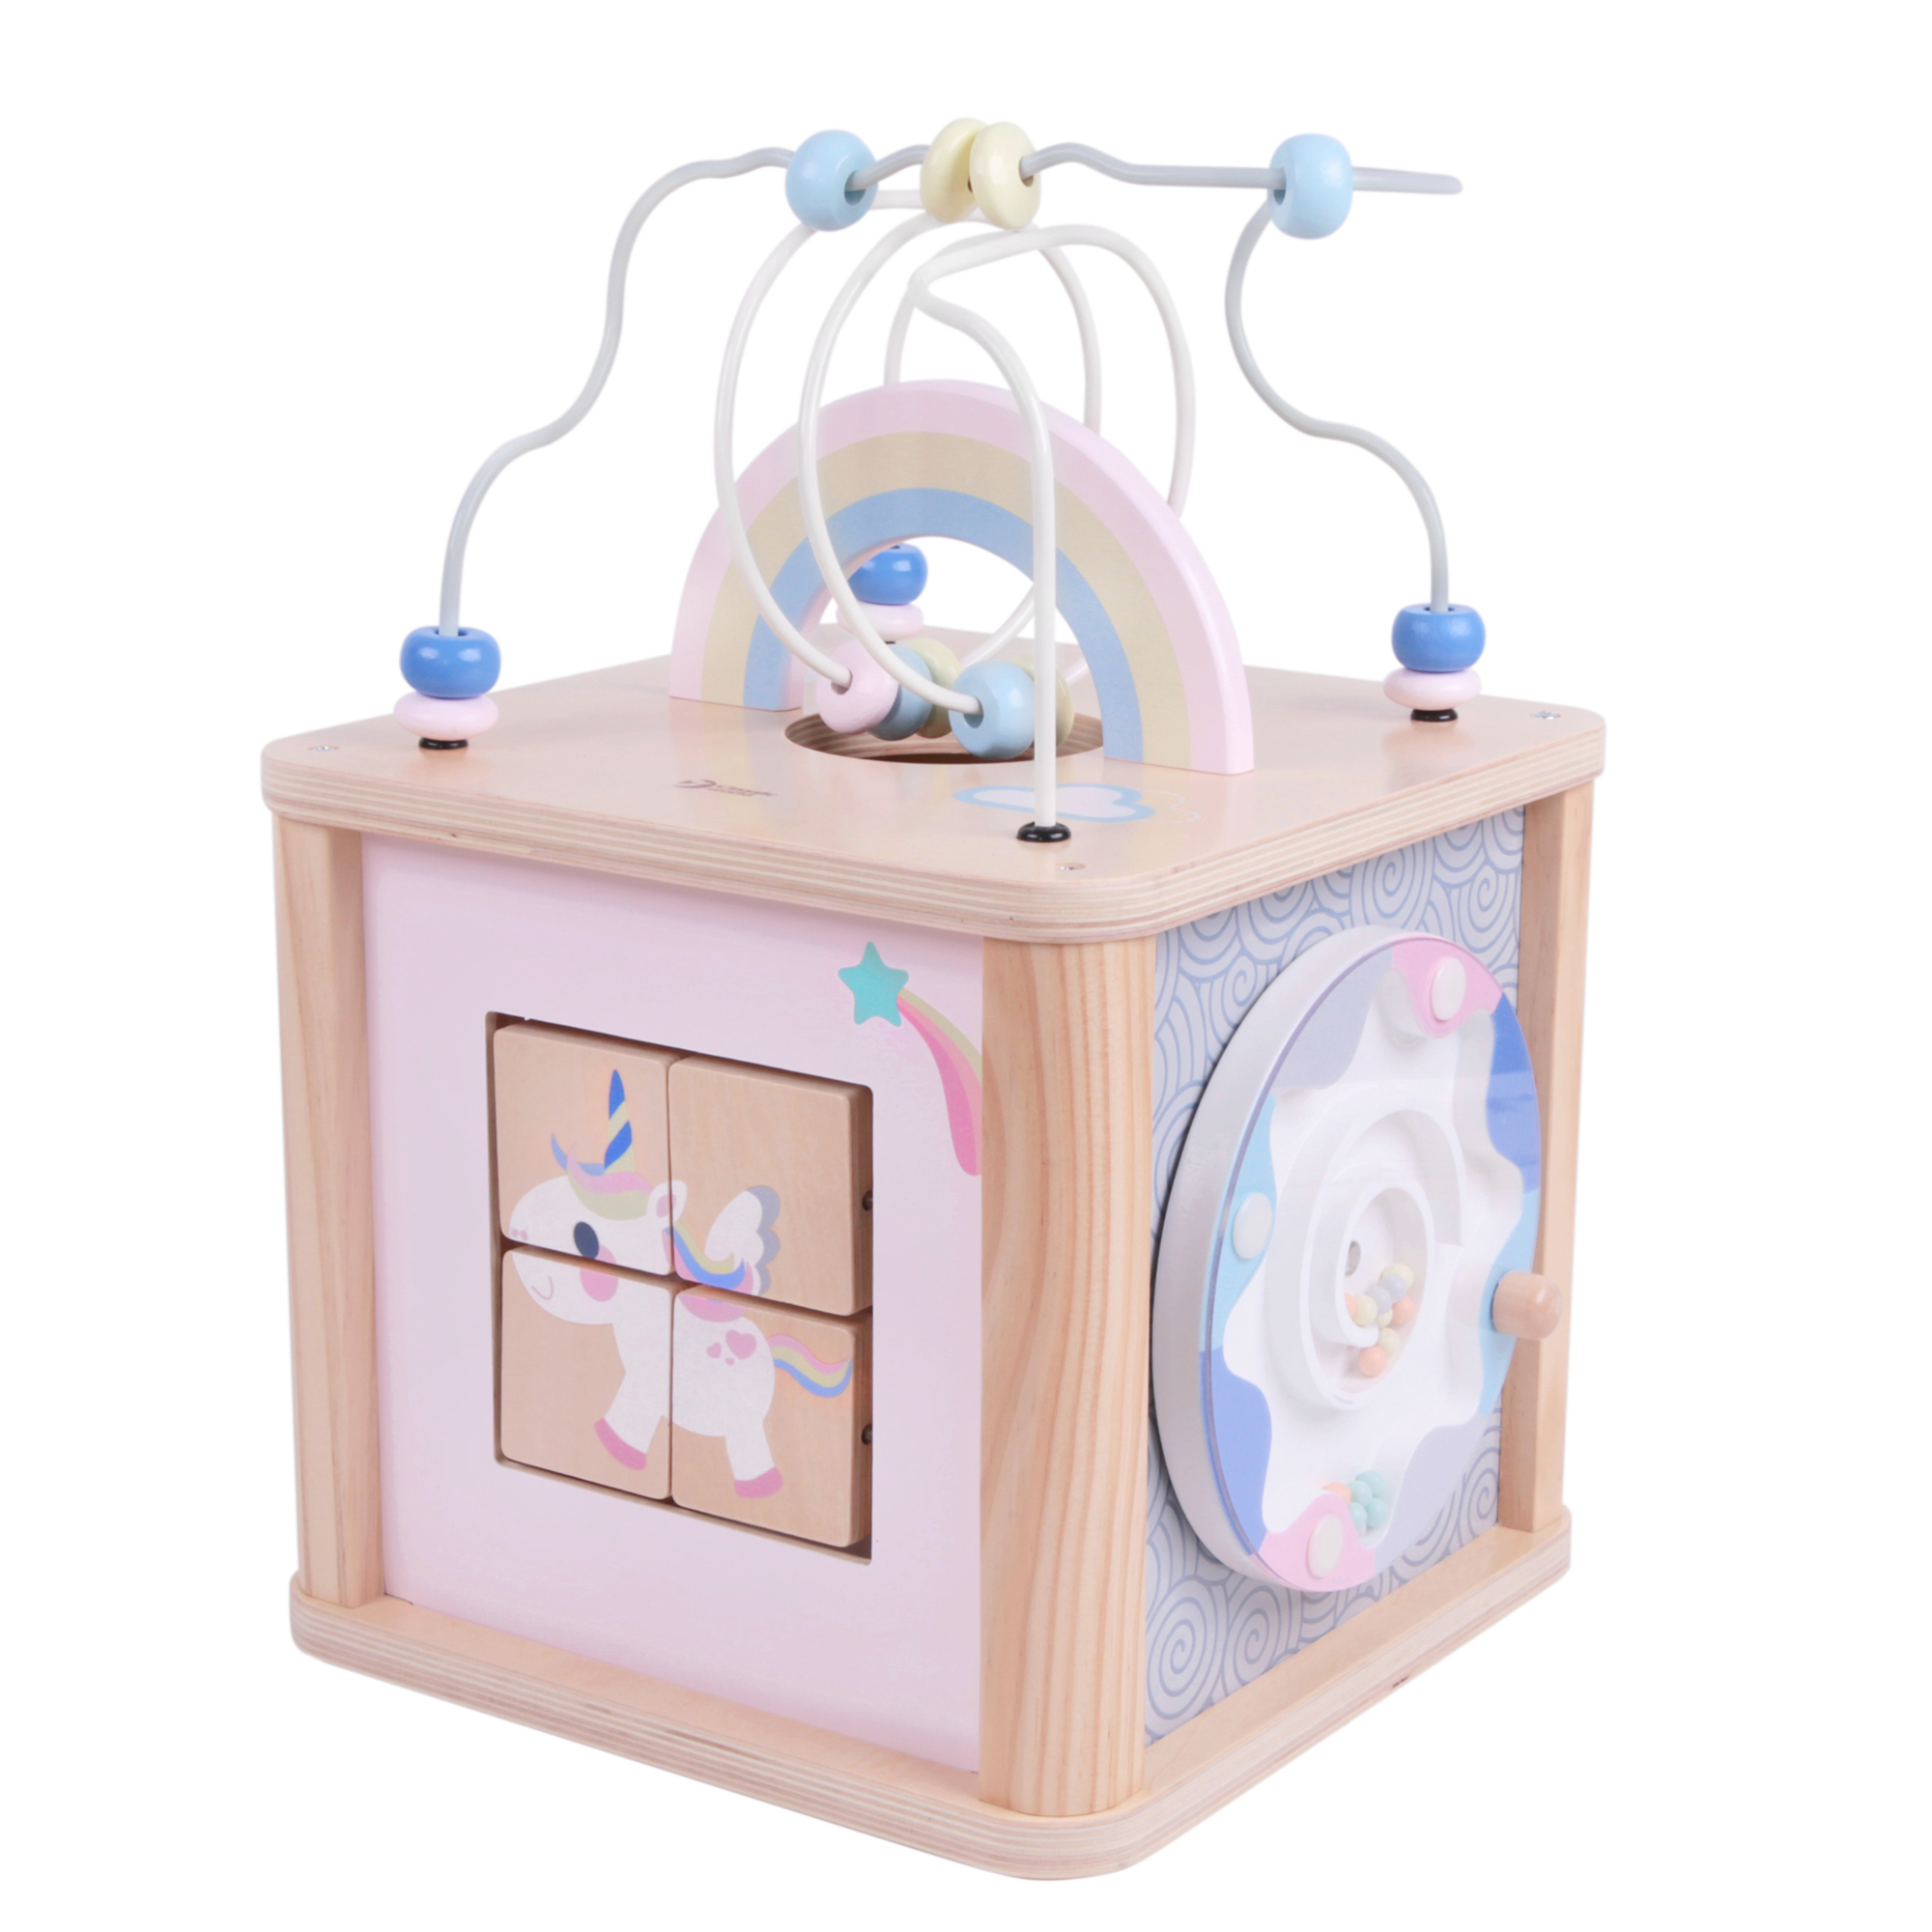 Classic world Dream Activity Cube - The Mango Tree